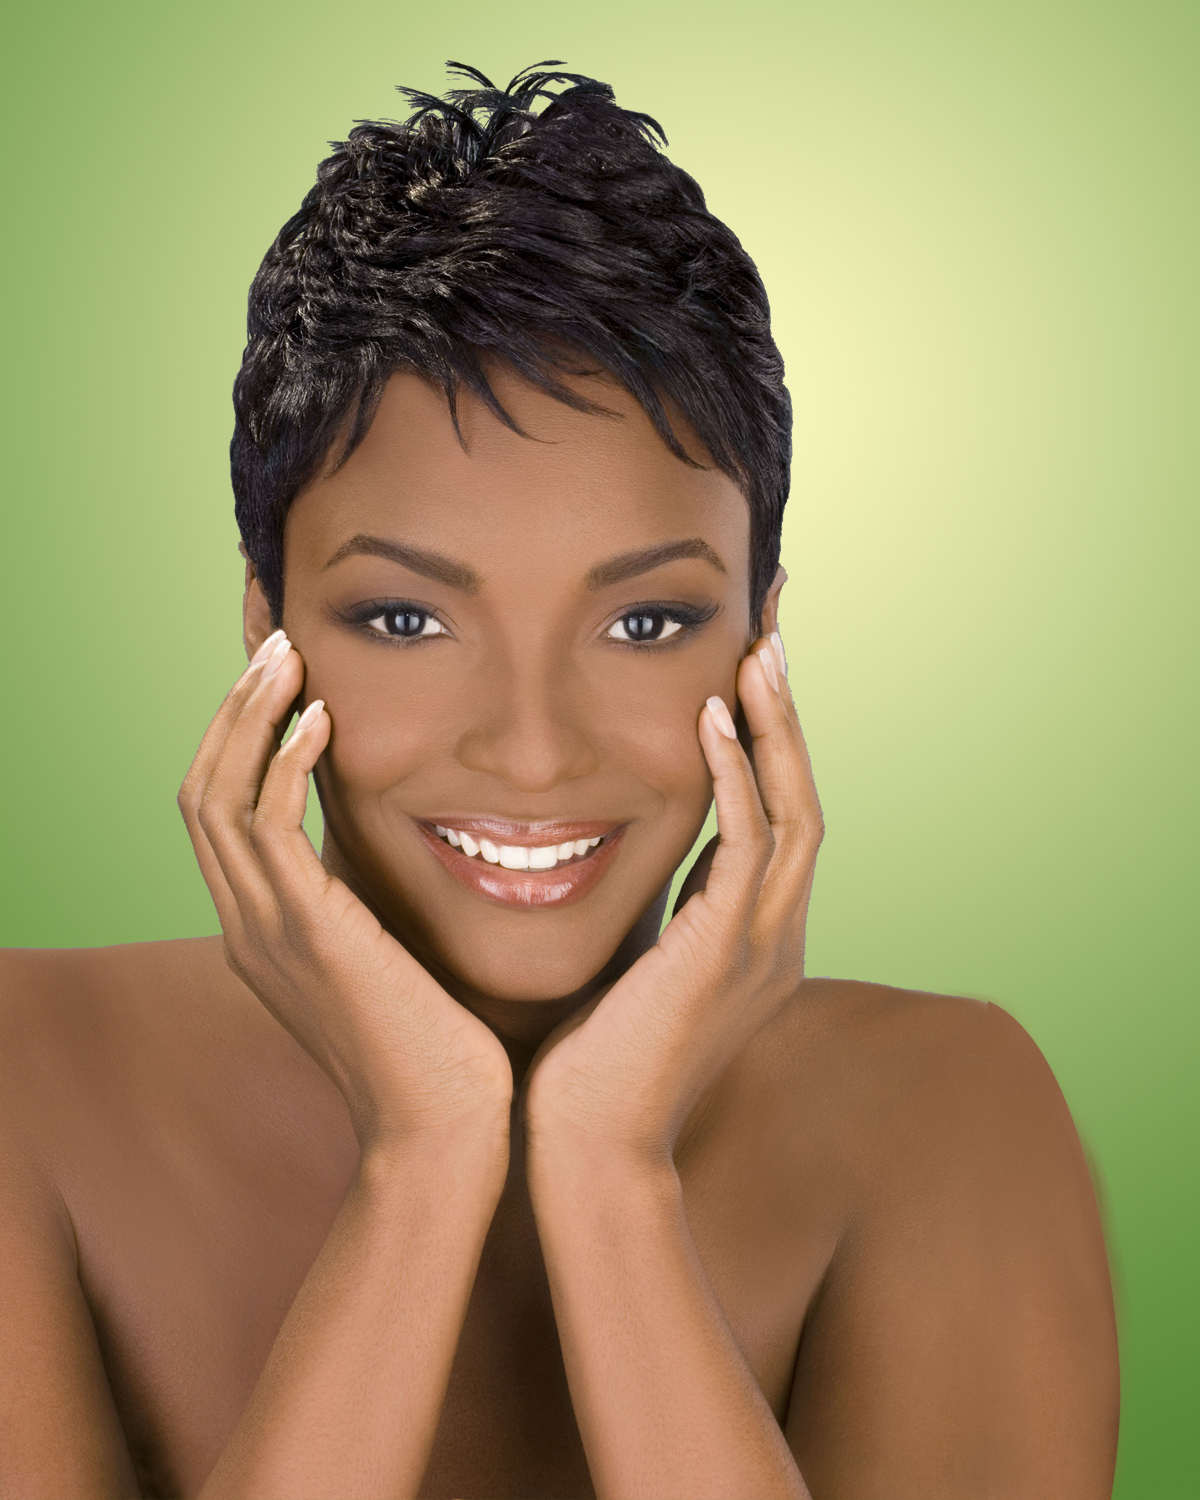 Short Hairstyles Black Woman – Hairstyle For Women & Man Regarding Short Short Haircuts For Black Women (View 13 of 25)